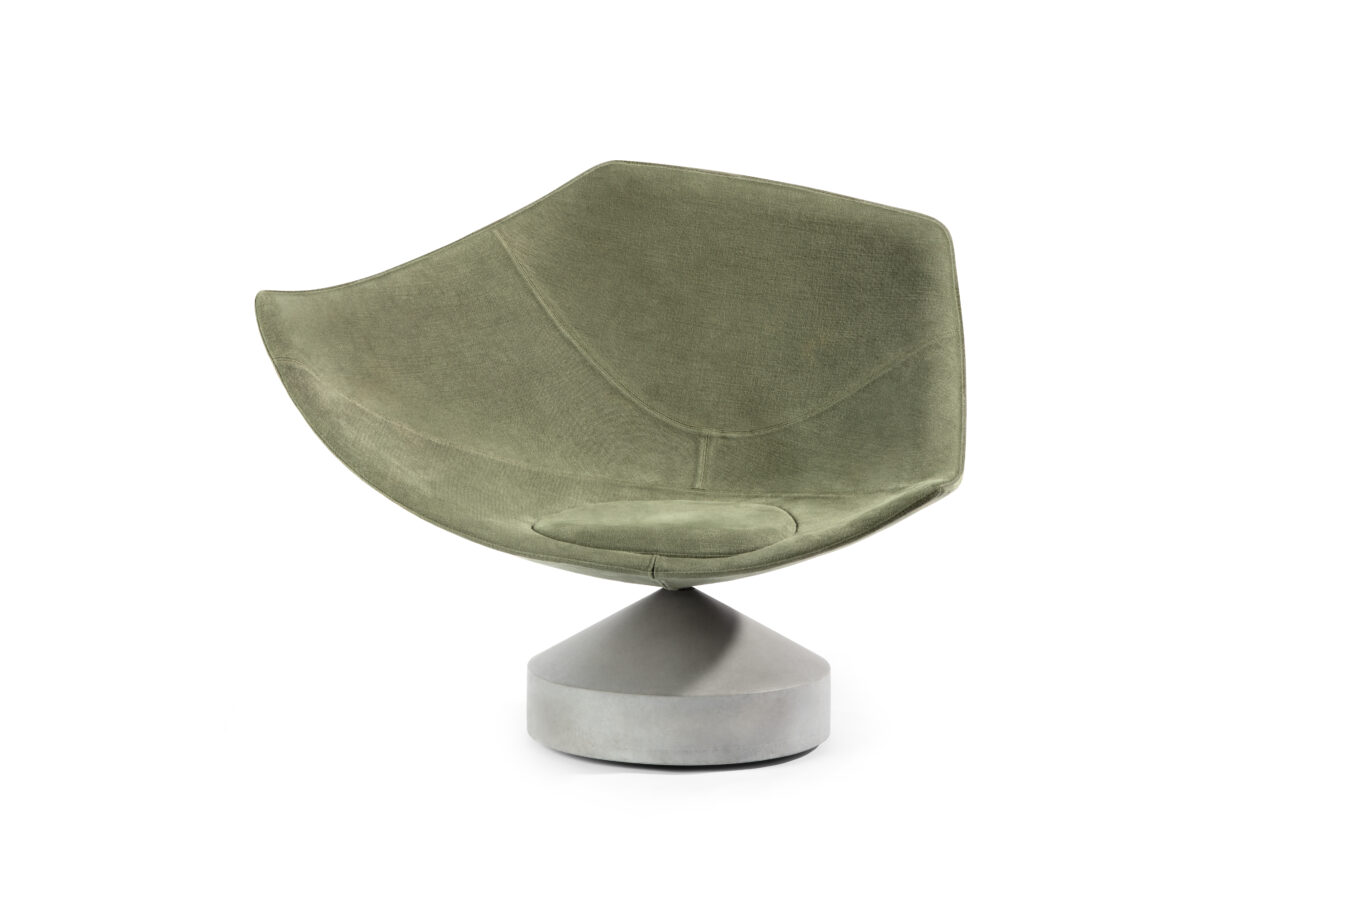 Jangada a Contemporary seat designed by emmanuel Babled and Upholstered with Rogers and Goffigon